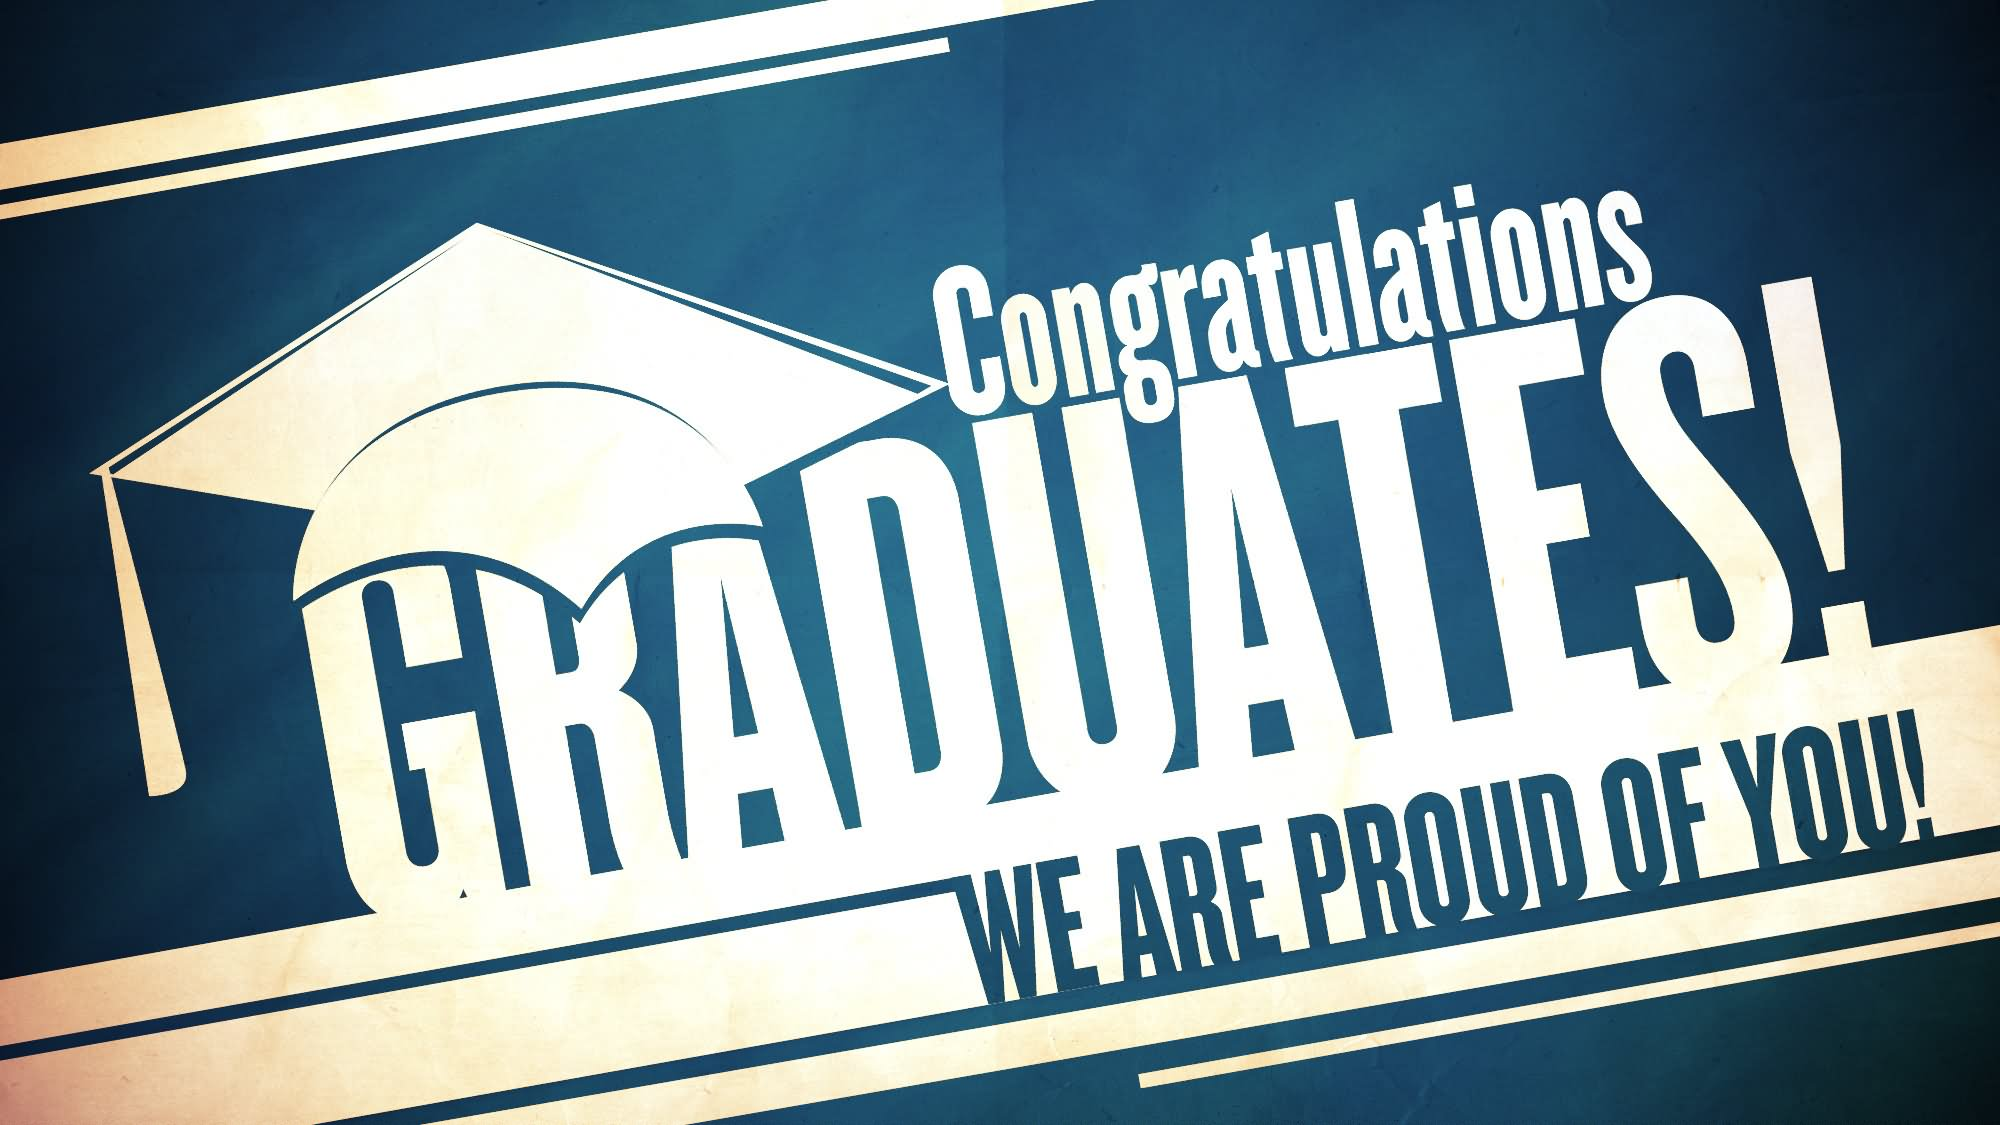 Congratulations Graduates We Are Proud Of You